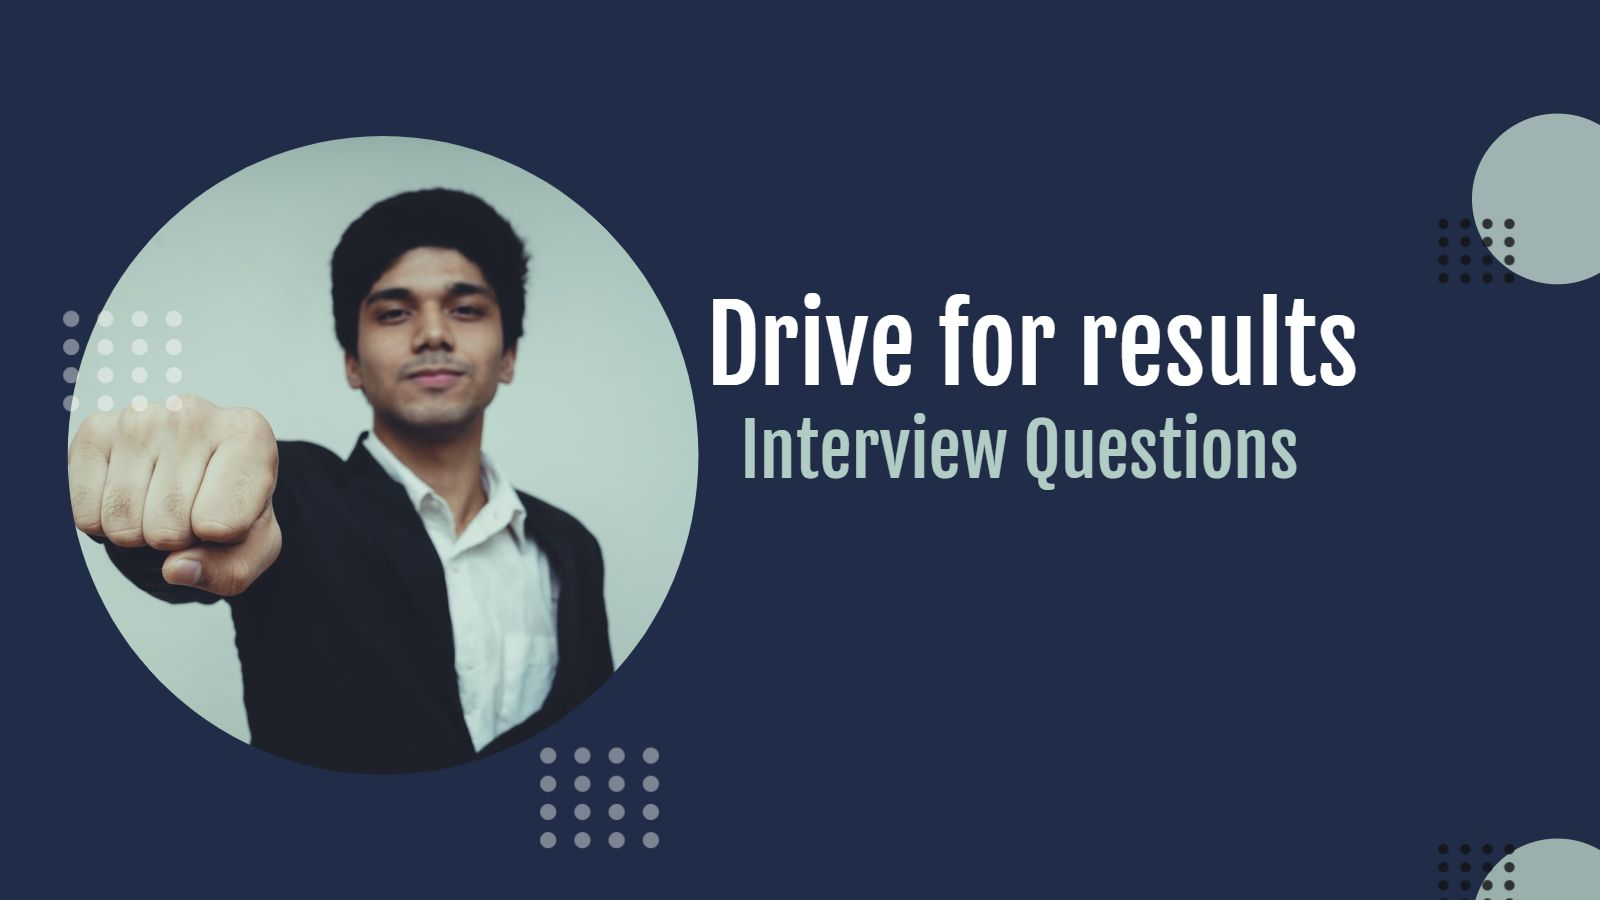 Drive for results interview questions